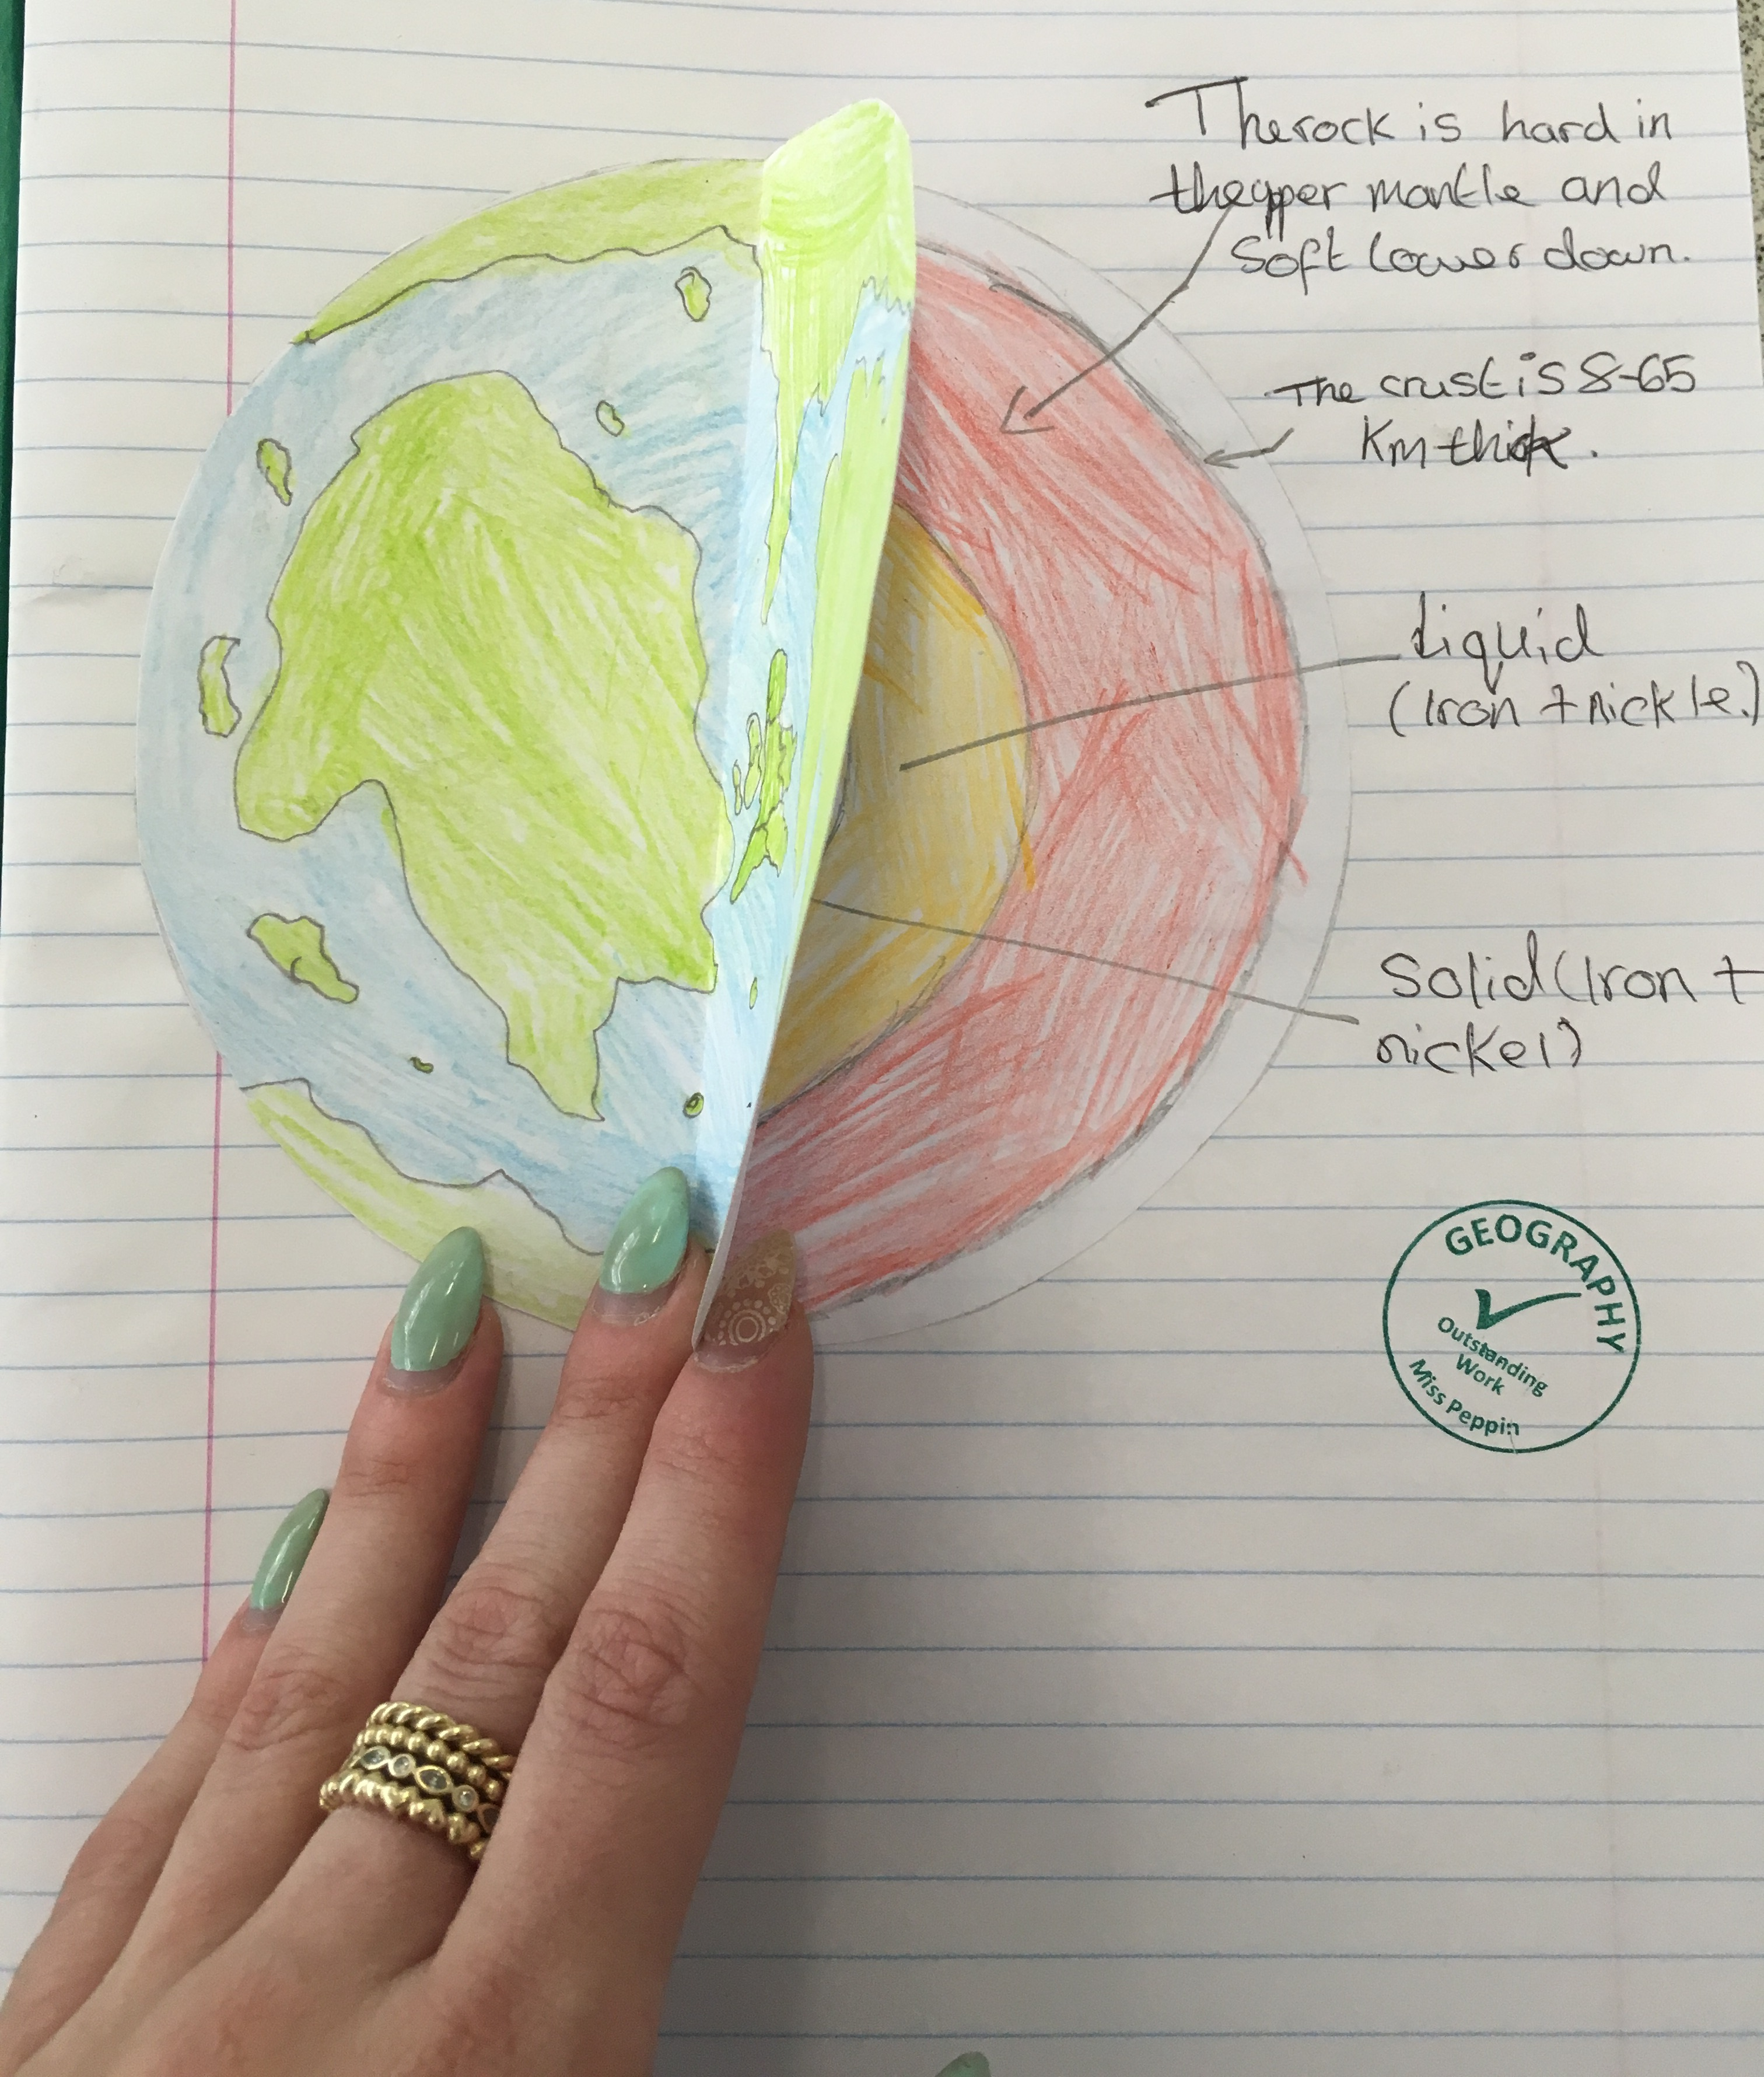 structure of the earth diagram winnebago wiring diagrams foldable mrs geography an interactive introduction to plate tectonics in my classroom begins with students creating a